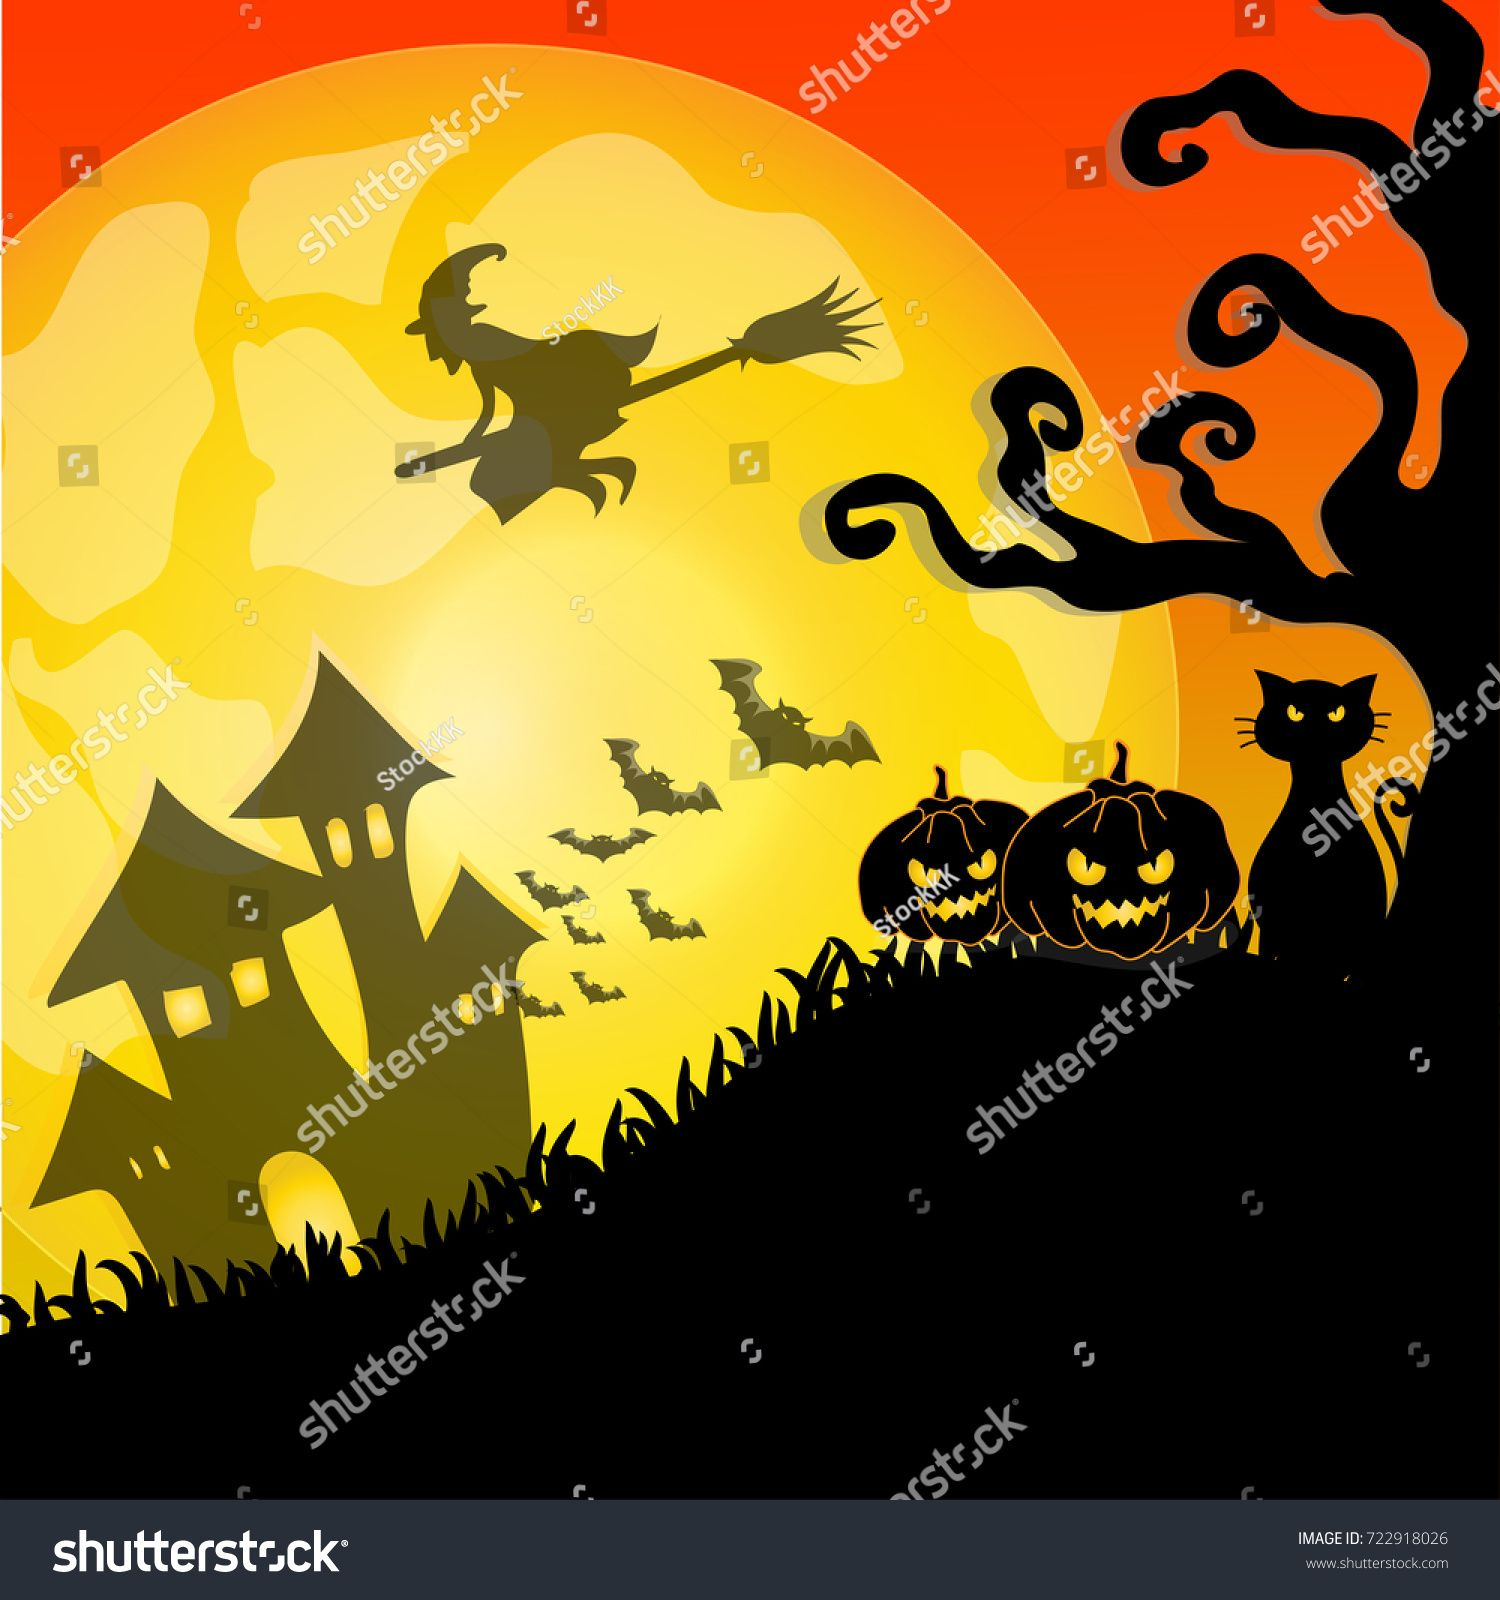 Vector and illustration of silhouette of Halloween